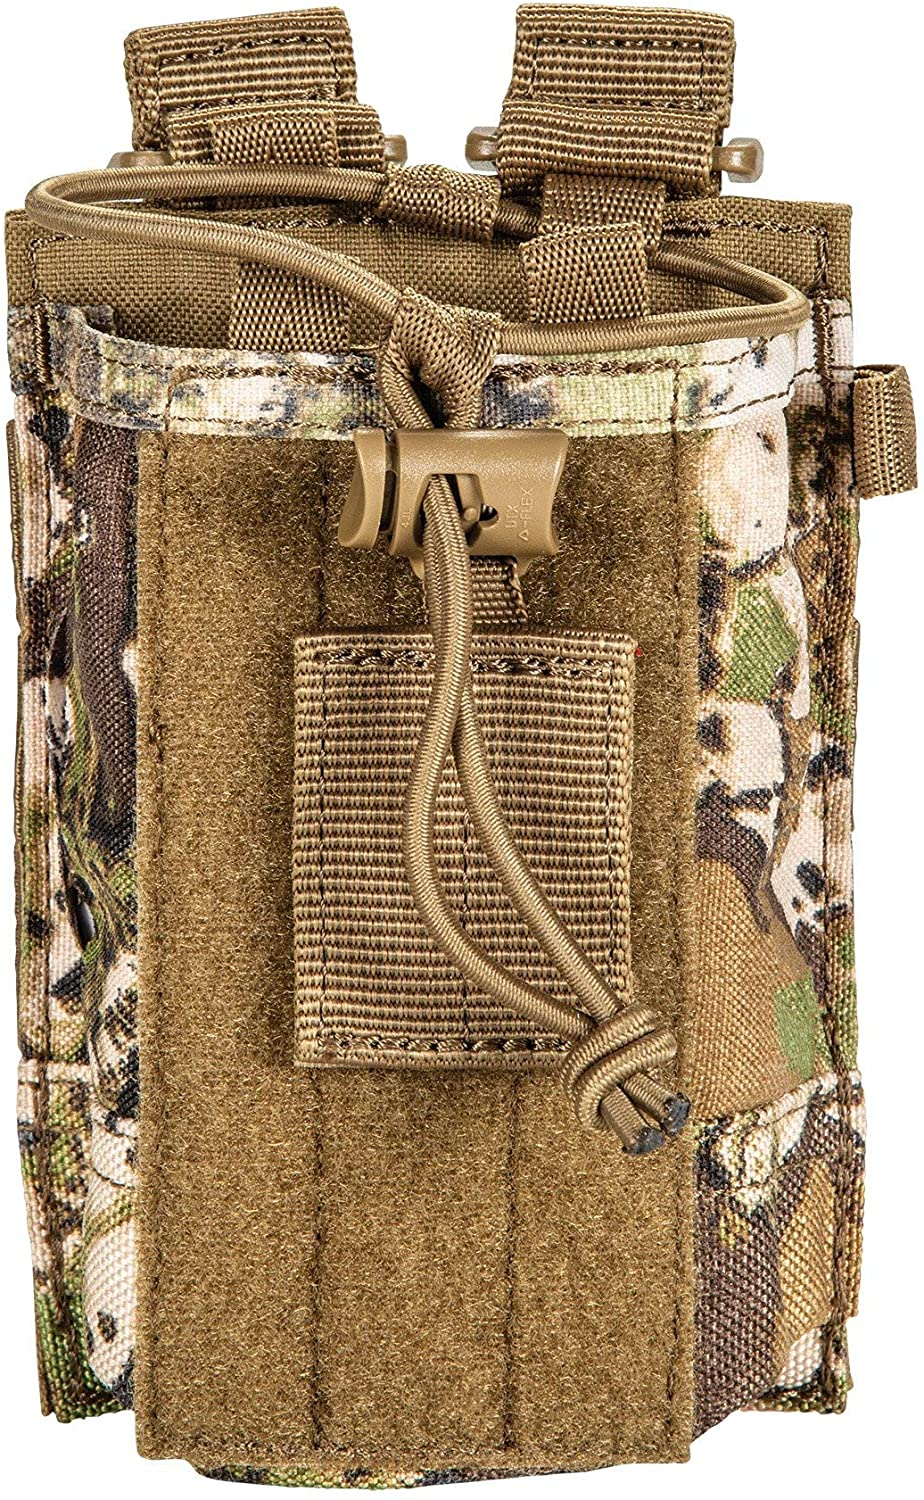 5.11 Tactical GEO7 Advanced Conceal Camo Lightweight & All-Weather Radio Pouch, Style 58718, Terrain